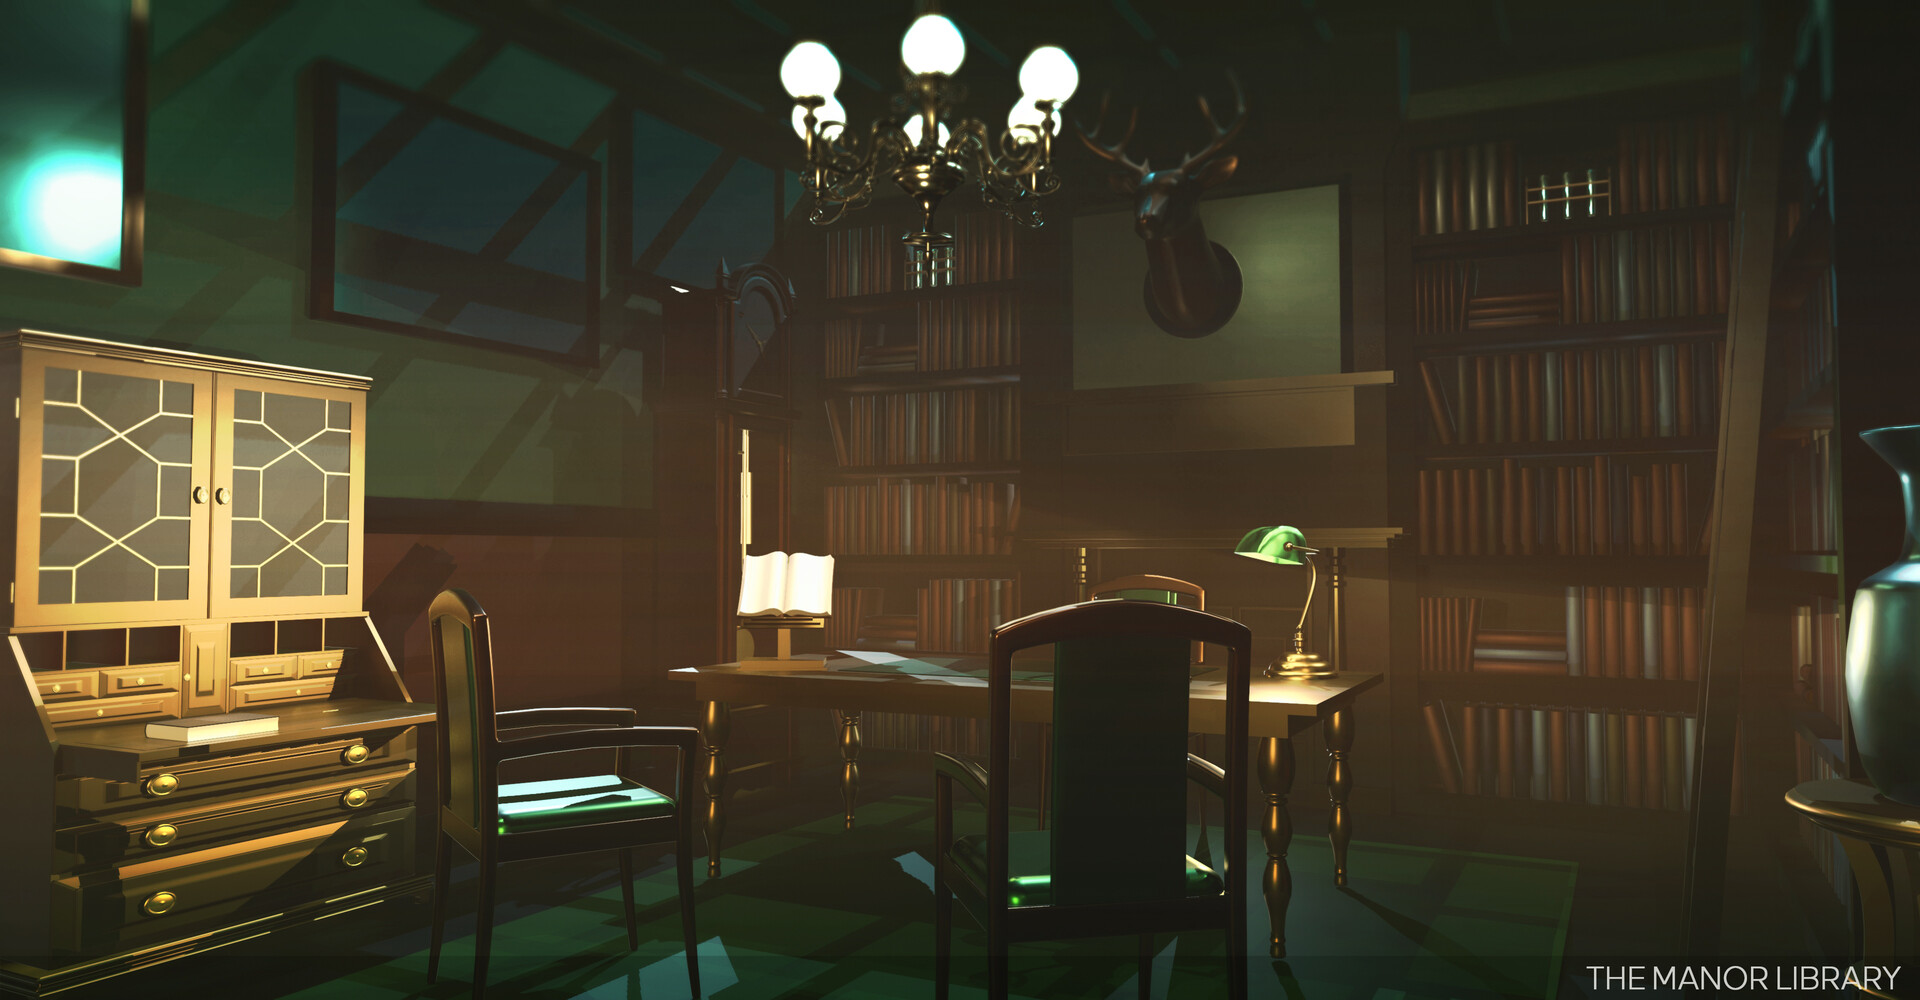 The_Manor_Library_Render_03